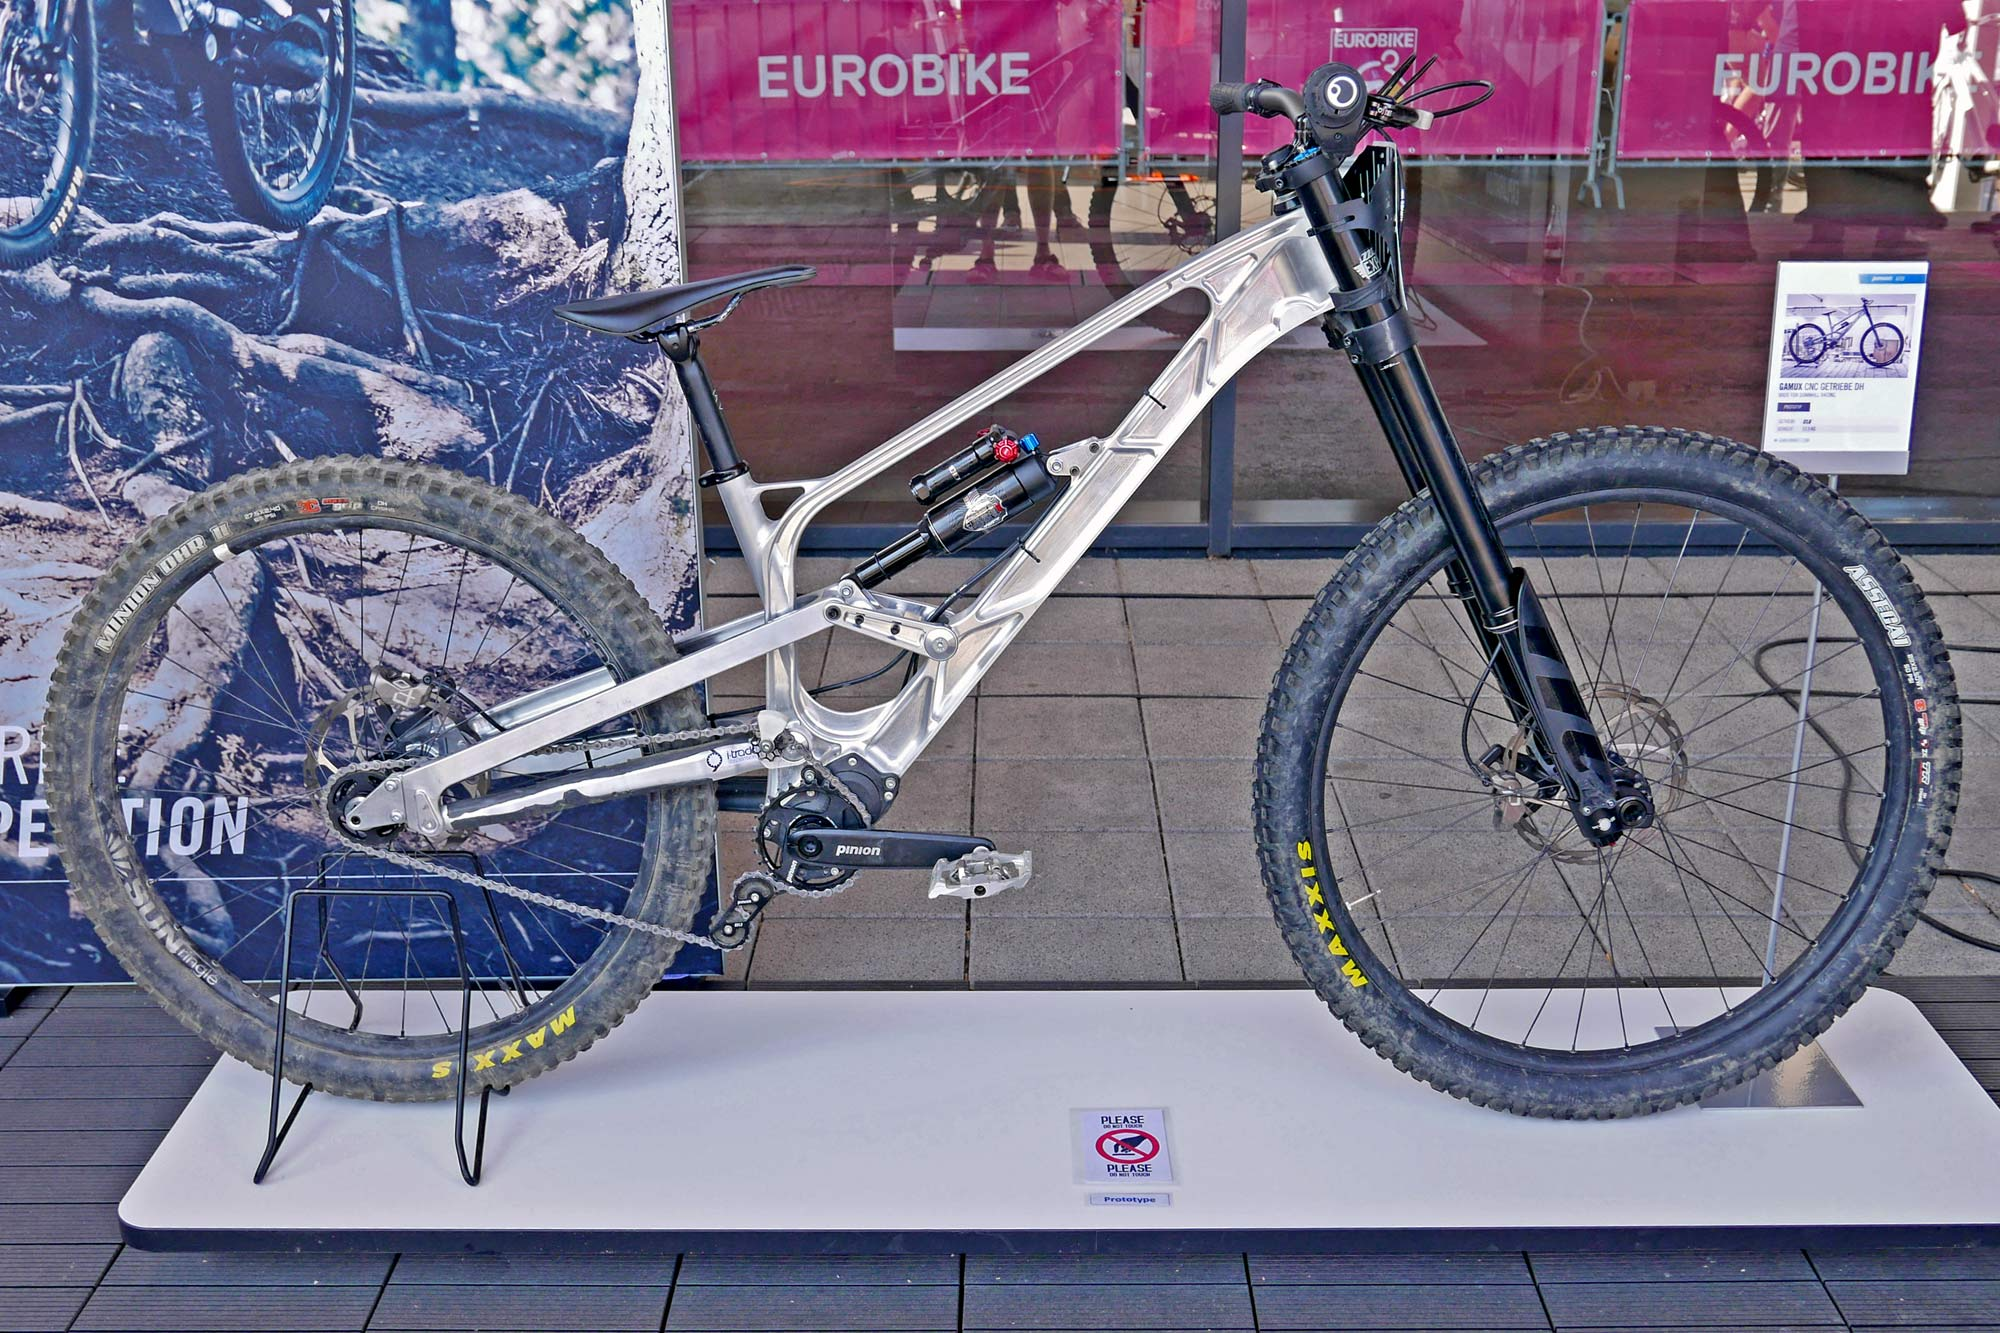 Gamux CNC 197 Gearbox DH, prototype Pinion gearbox downhill bike, complete